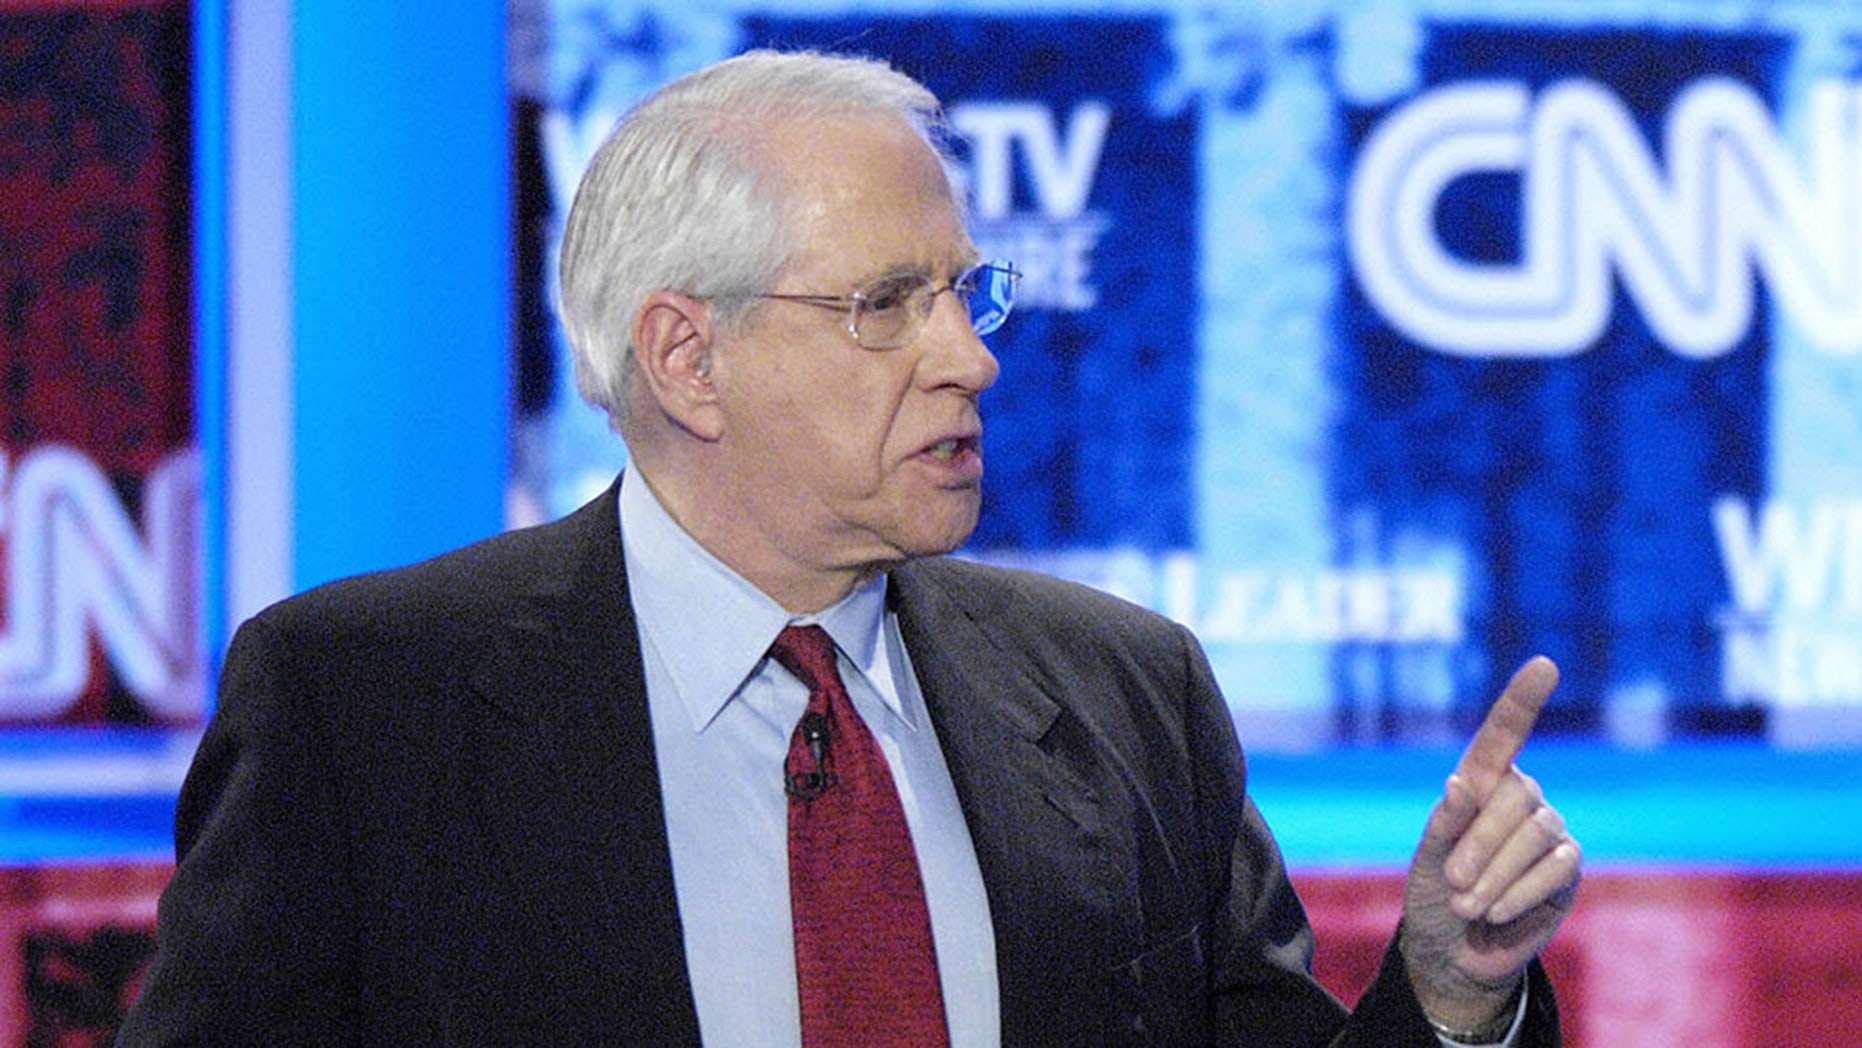 Two days after fans eager to push the Democrats further to the left started boosting the Twitter cred of Democratic former Sen. Mike Gravel of Alaska, 88, his controversial past is leaping to the fore. (C.J. GUNTHER/AFP/Getty Images)